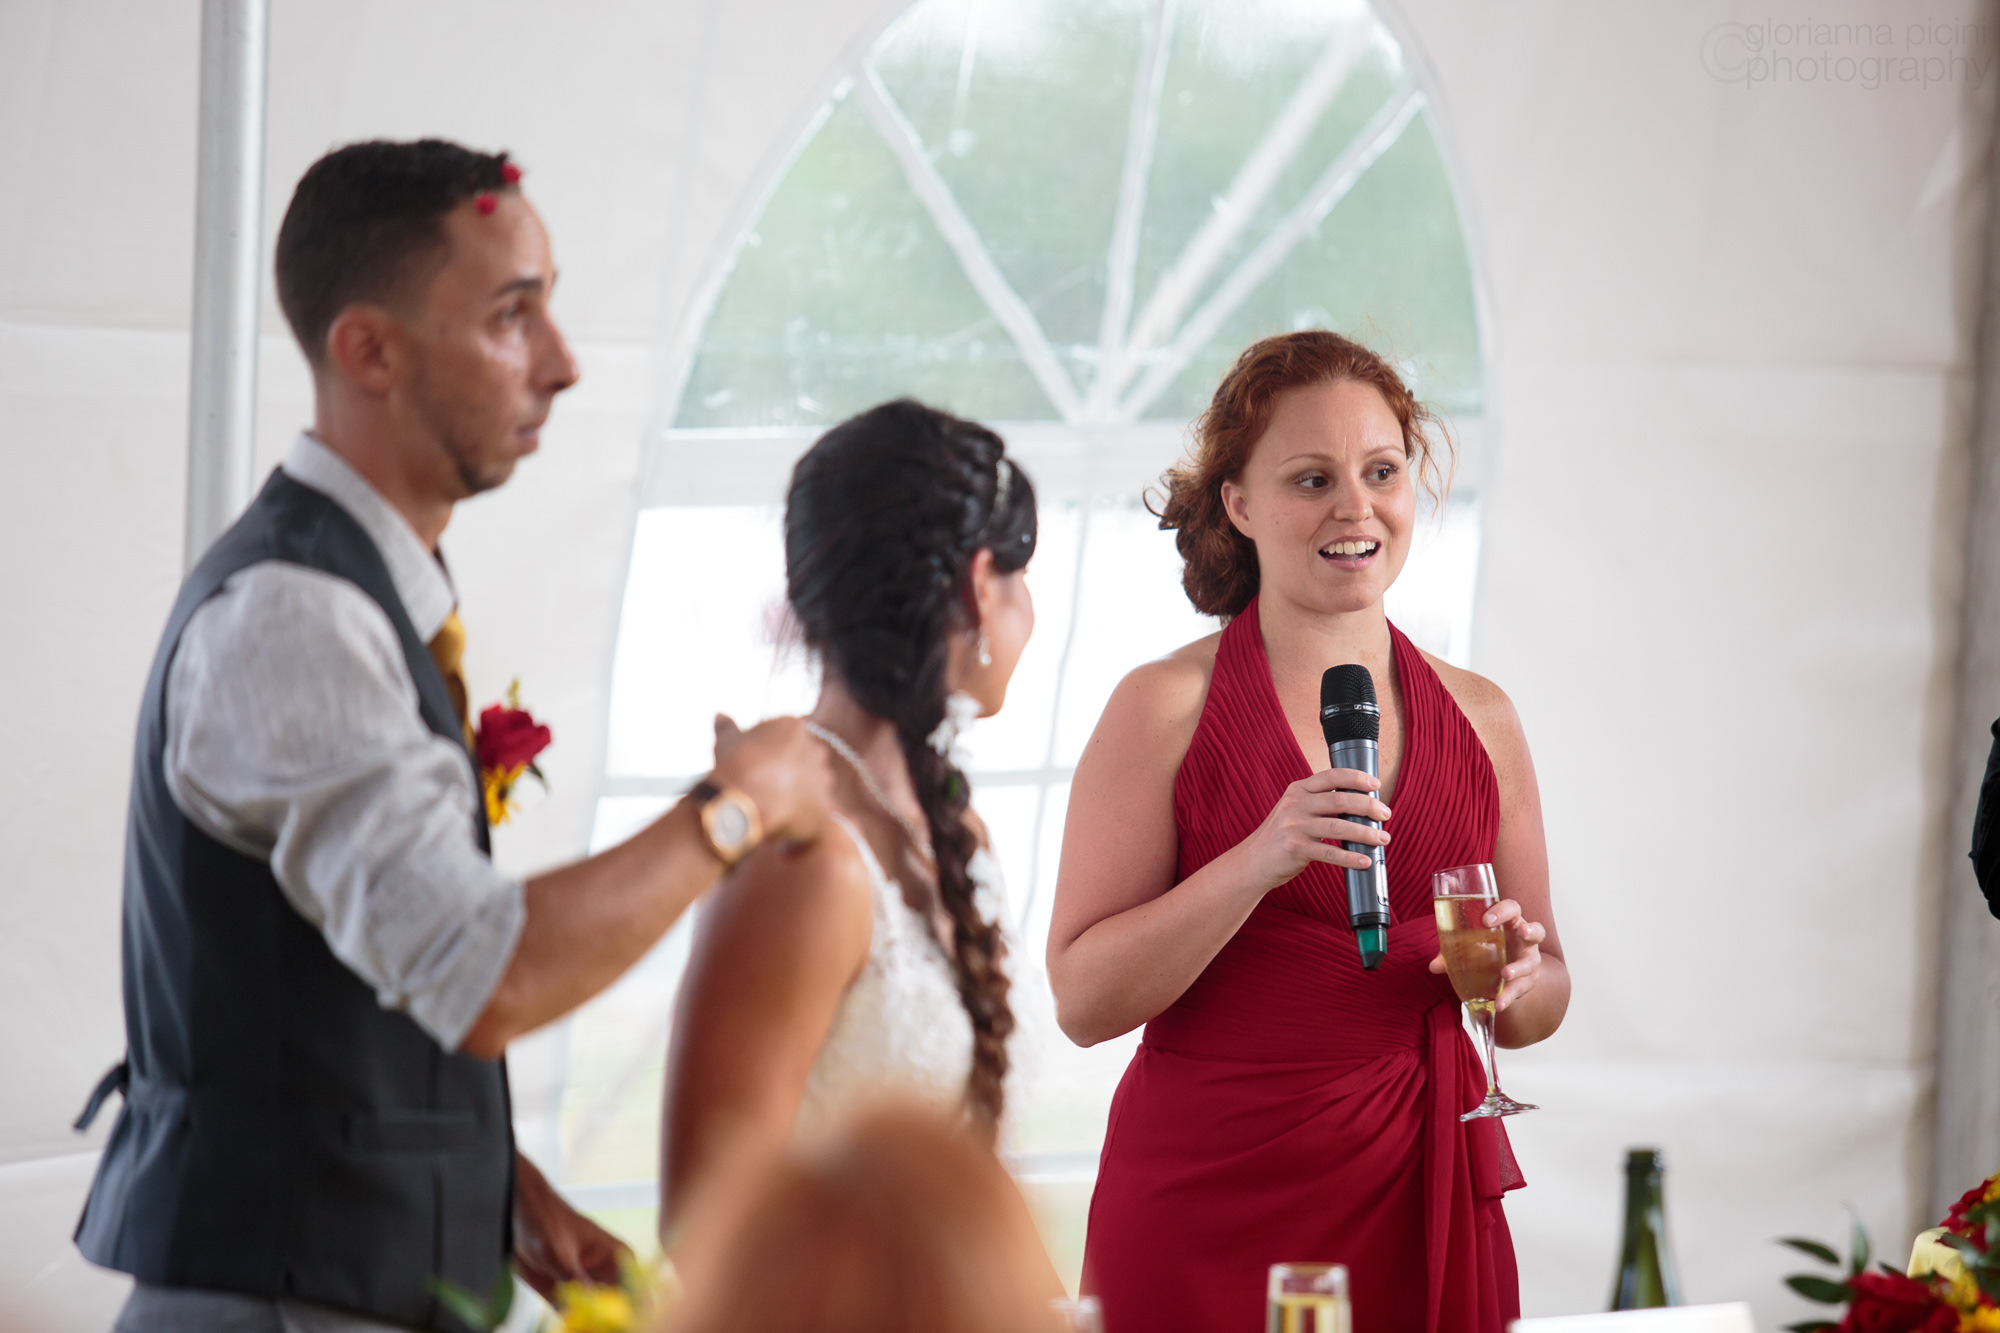 31c_VargasWedding-485.jpg